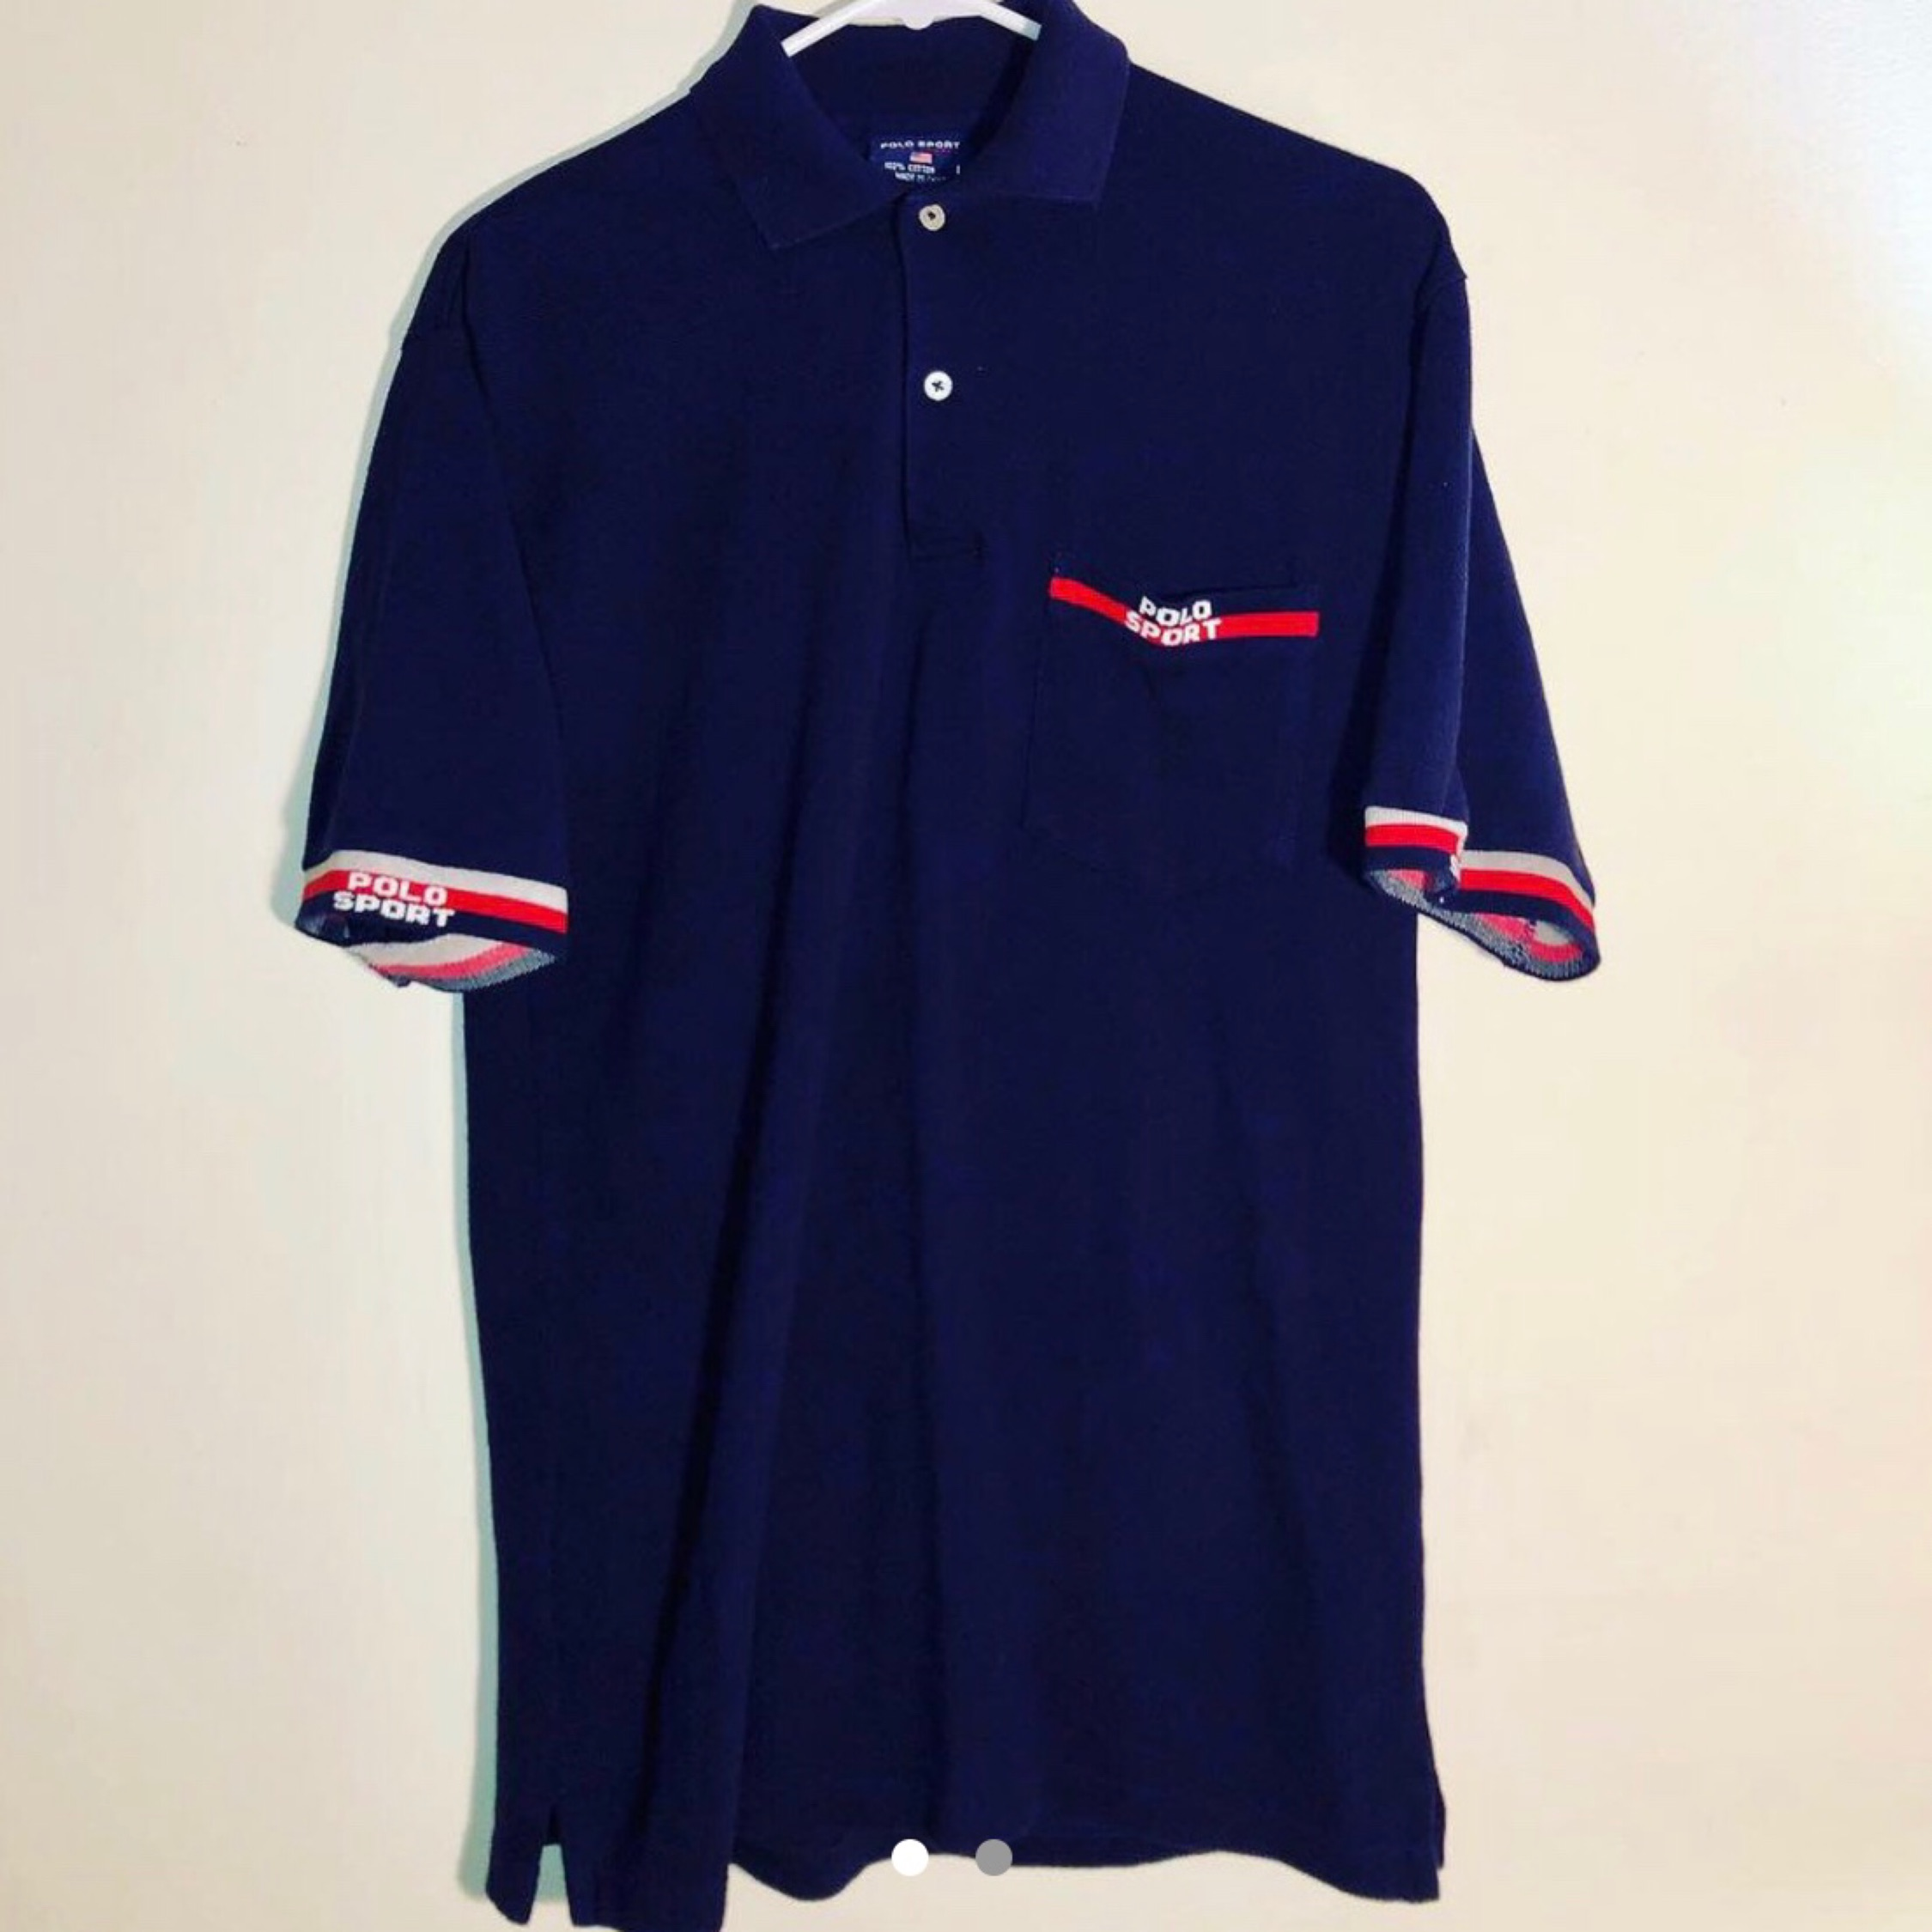 a877ef309a Vintage Polo Sport Ralph Lauren Polo. L. $20. Vintage 90'S Texas A&M  Embroidered T-Shirt